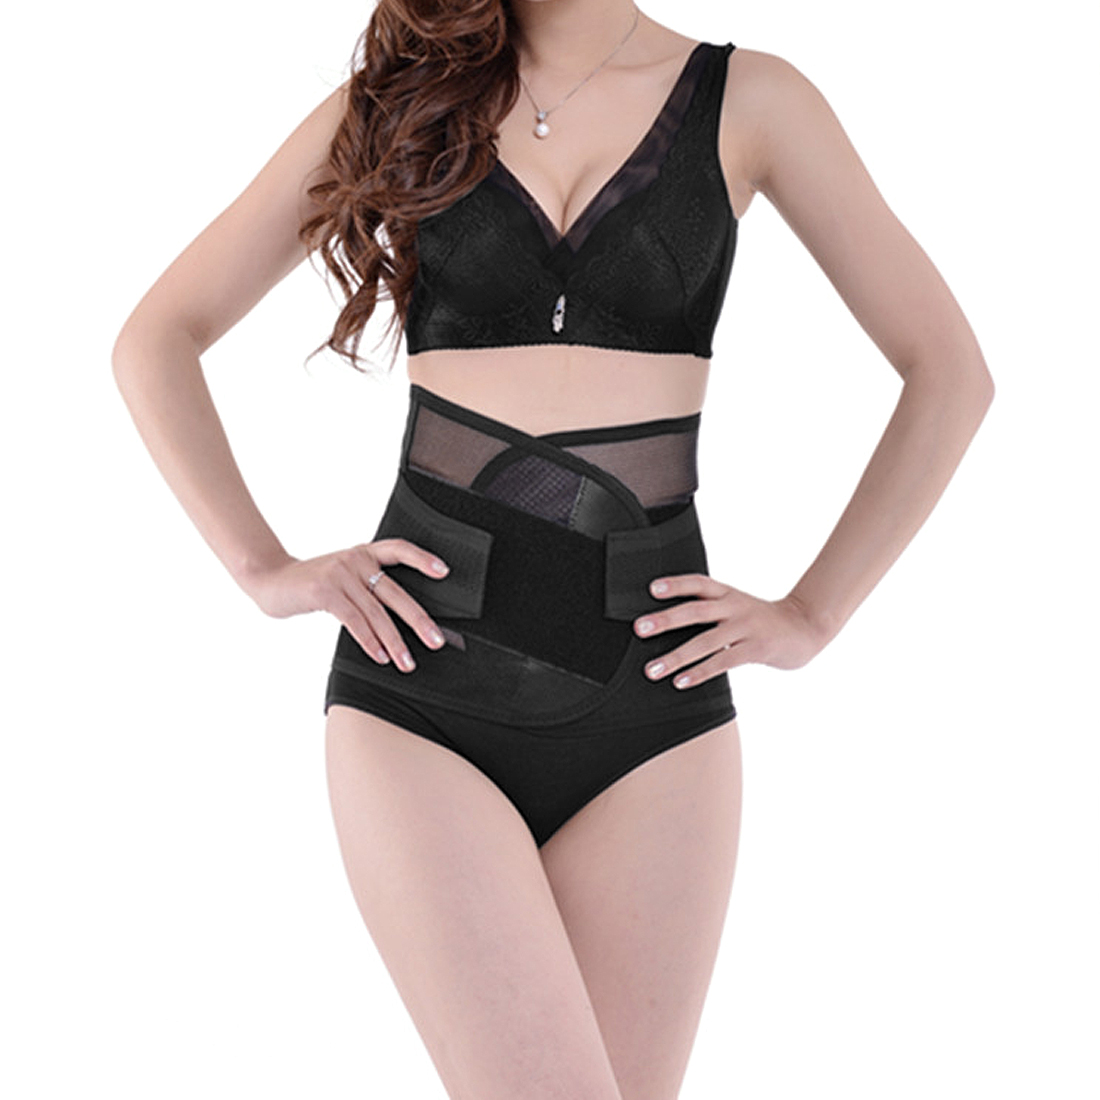 Black M Size Breathable Postpartum Abdominal Trimmer Belt Wrapping Shapewear